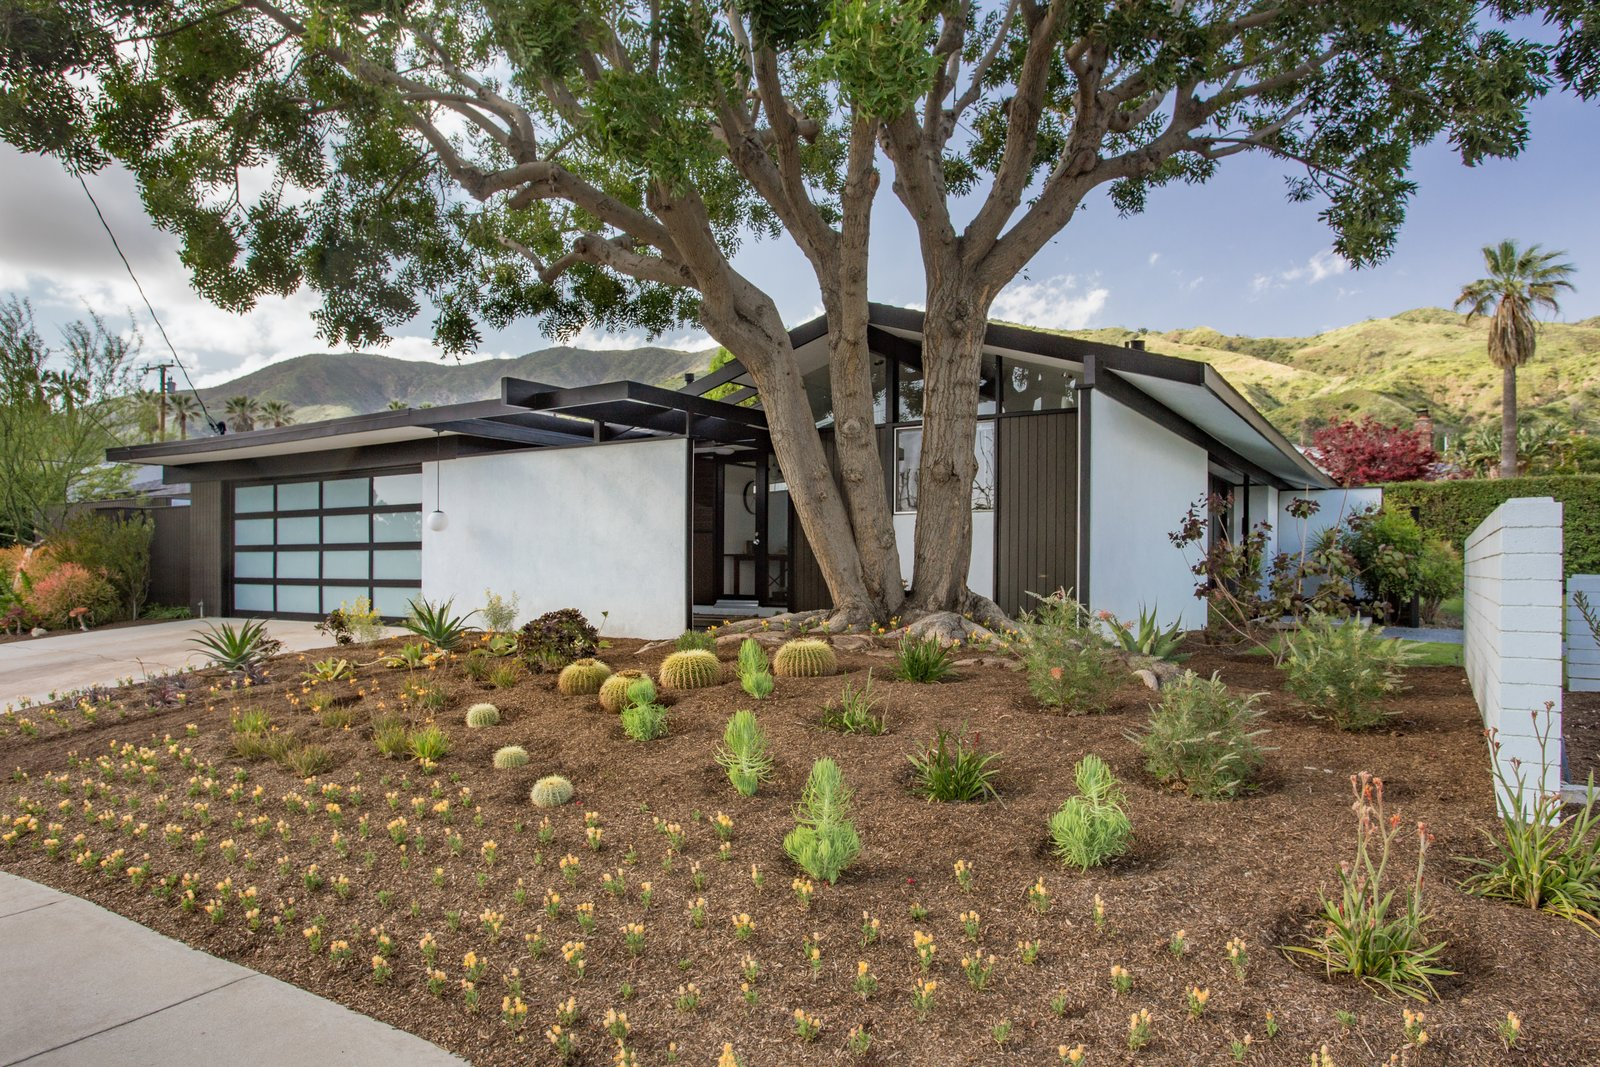 Outdoor, Front Yard, and Trees  Photo 1 of 14 in Offered at $899K, a Restored Midcentury Abode Shines in Southern California